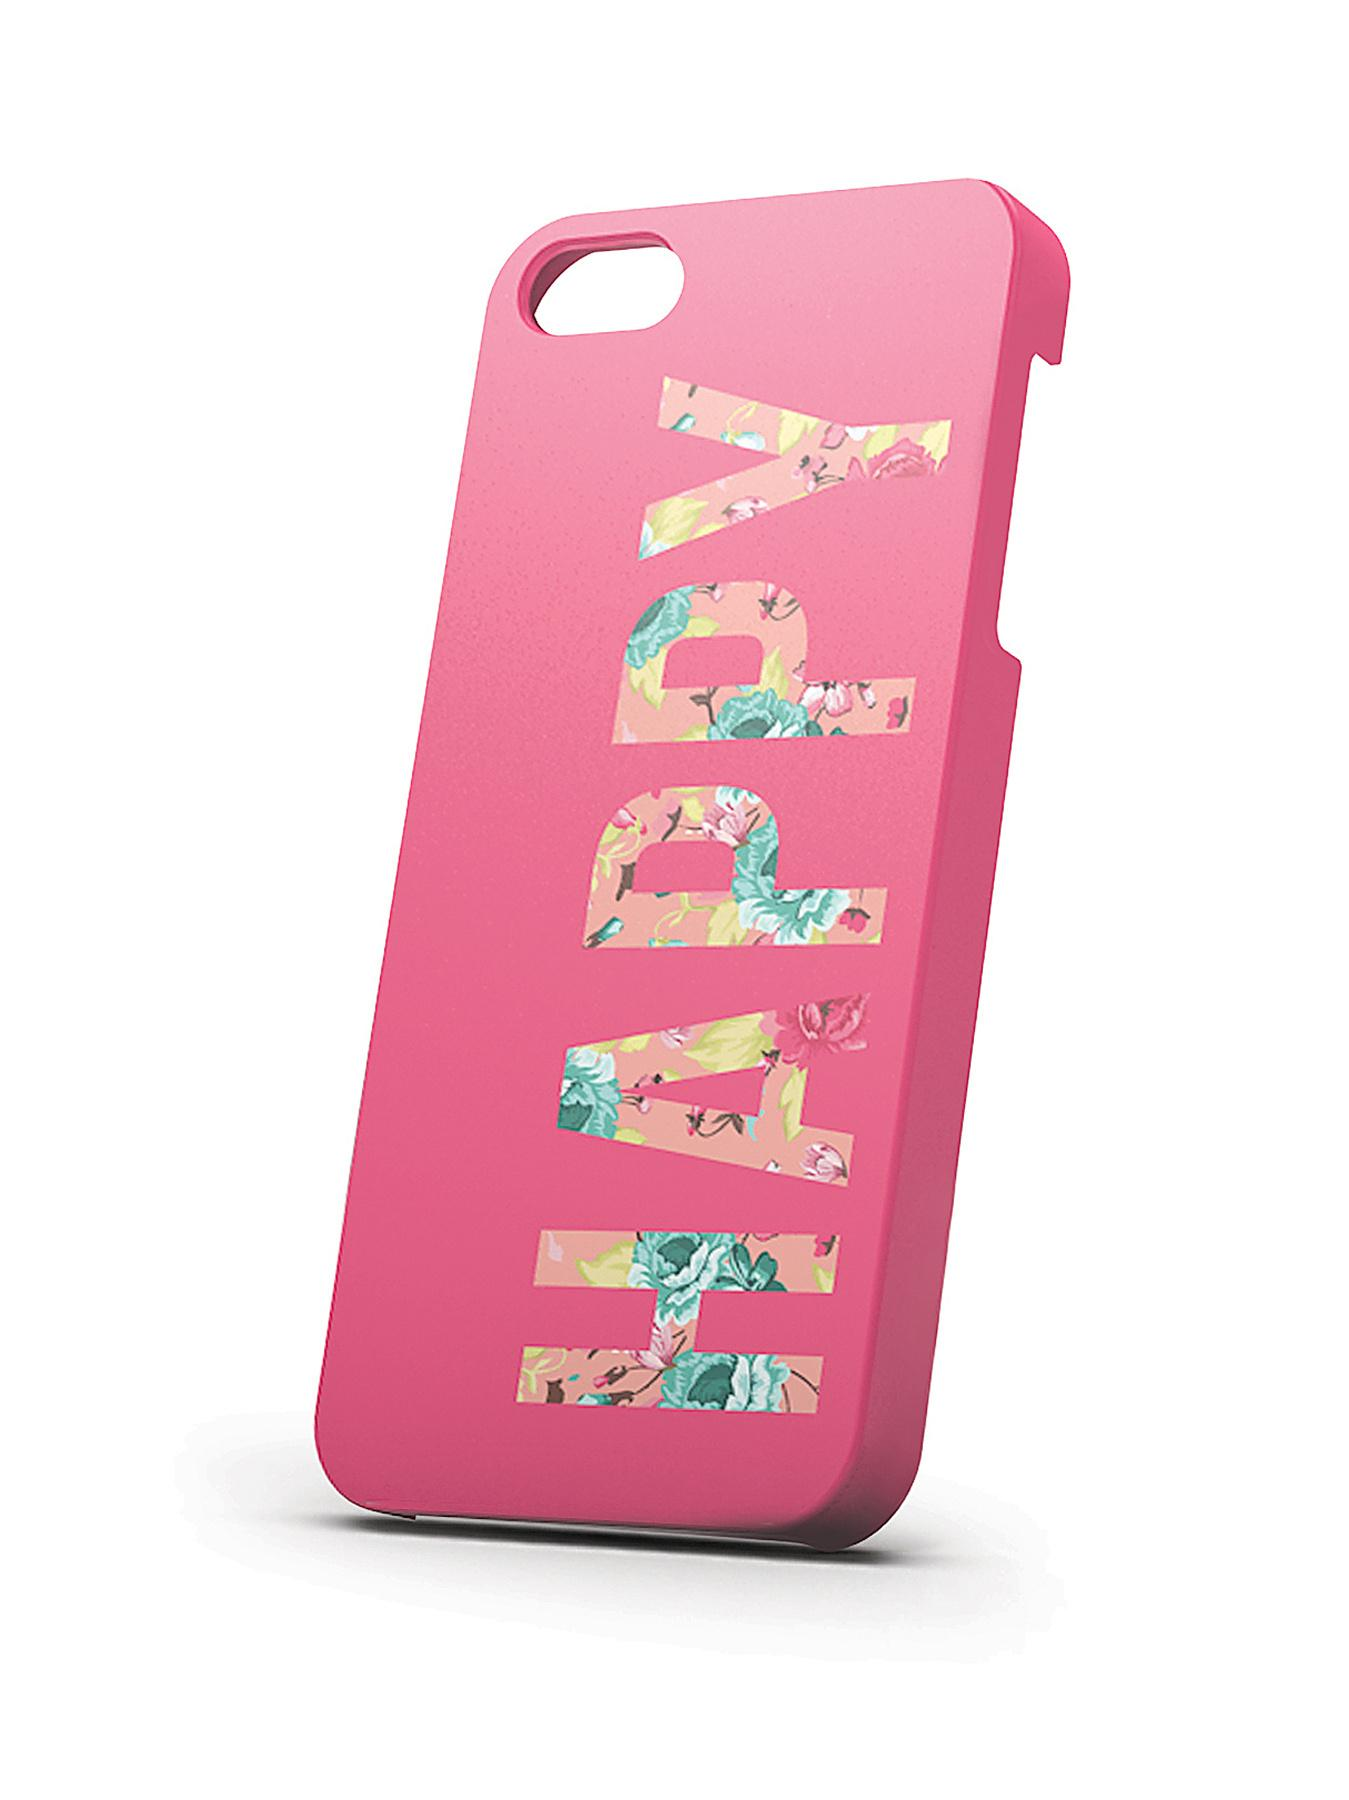 IPhone 5S Happy Case at Littlewoods